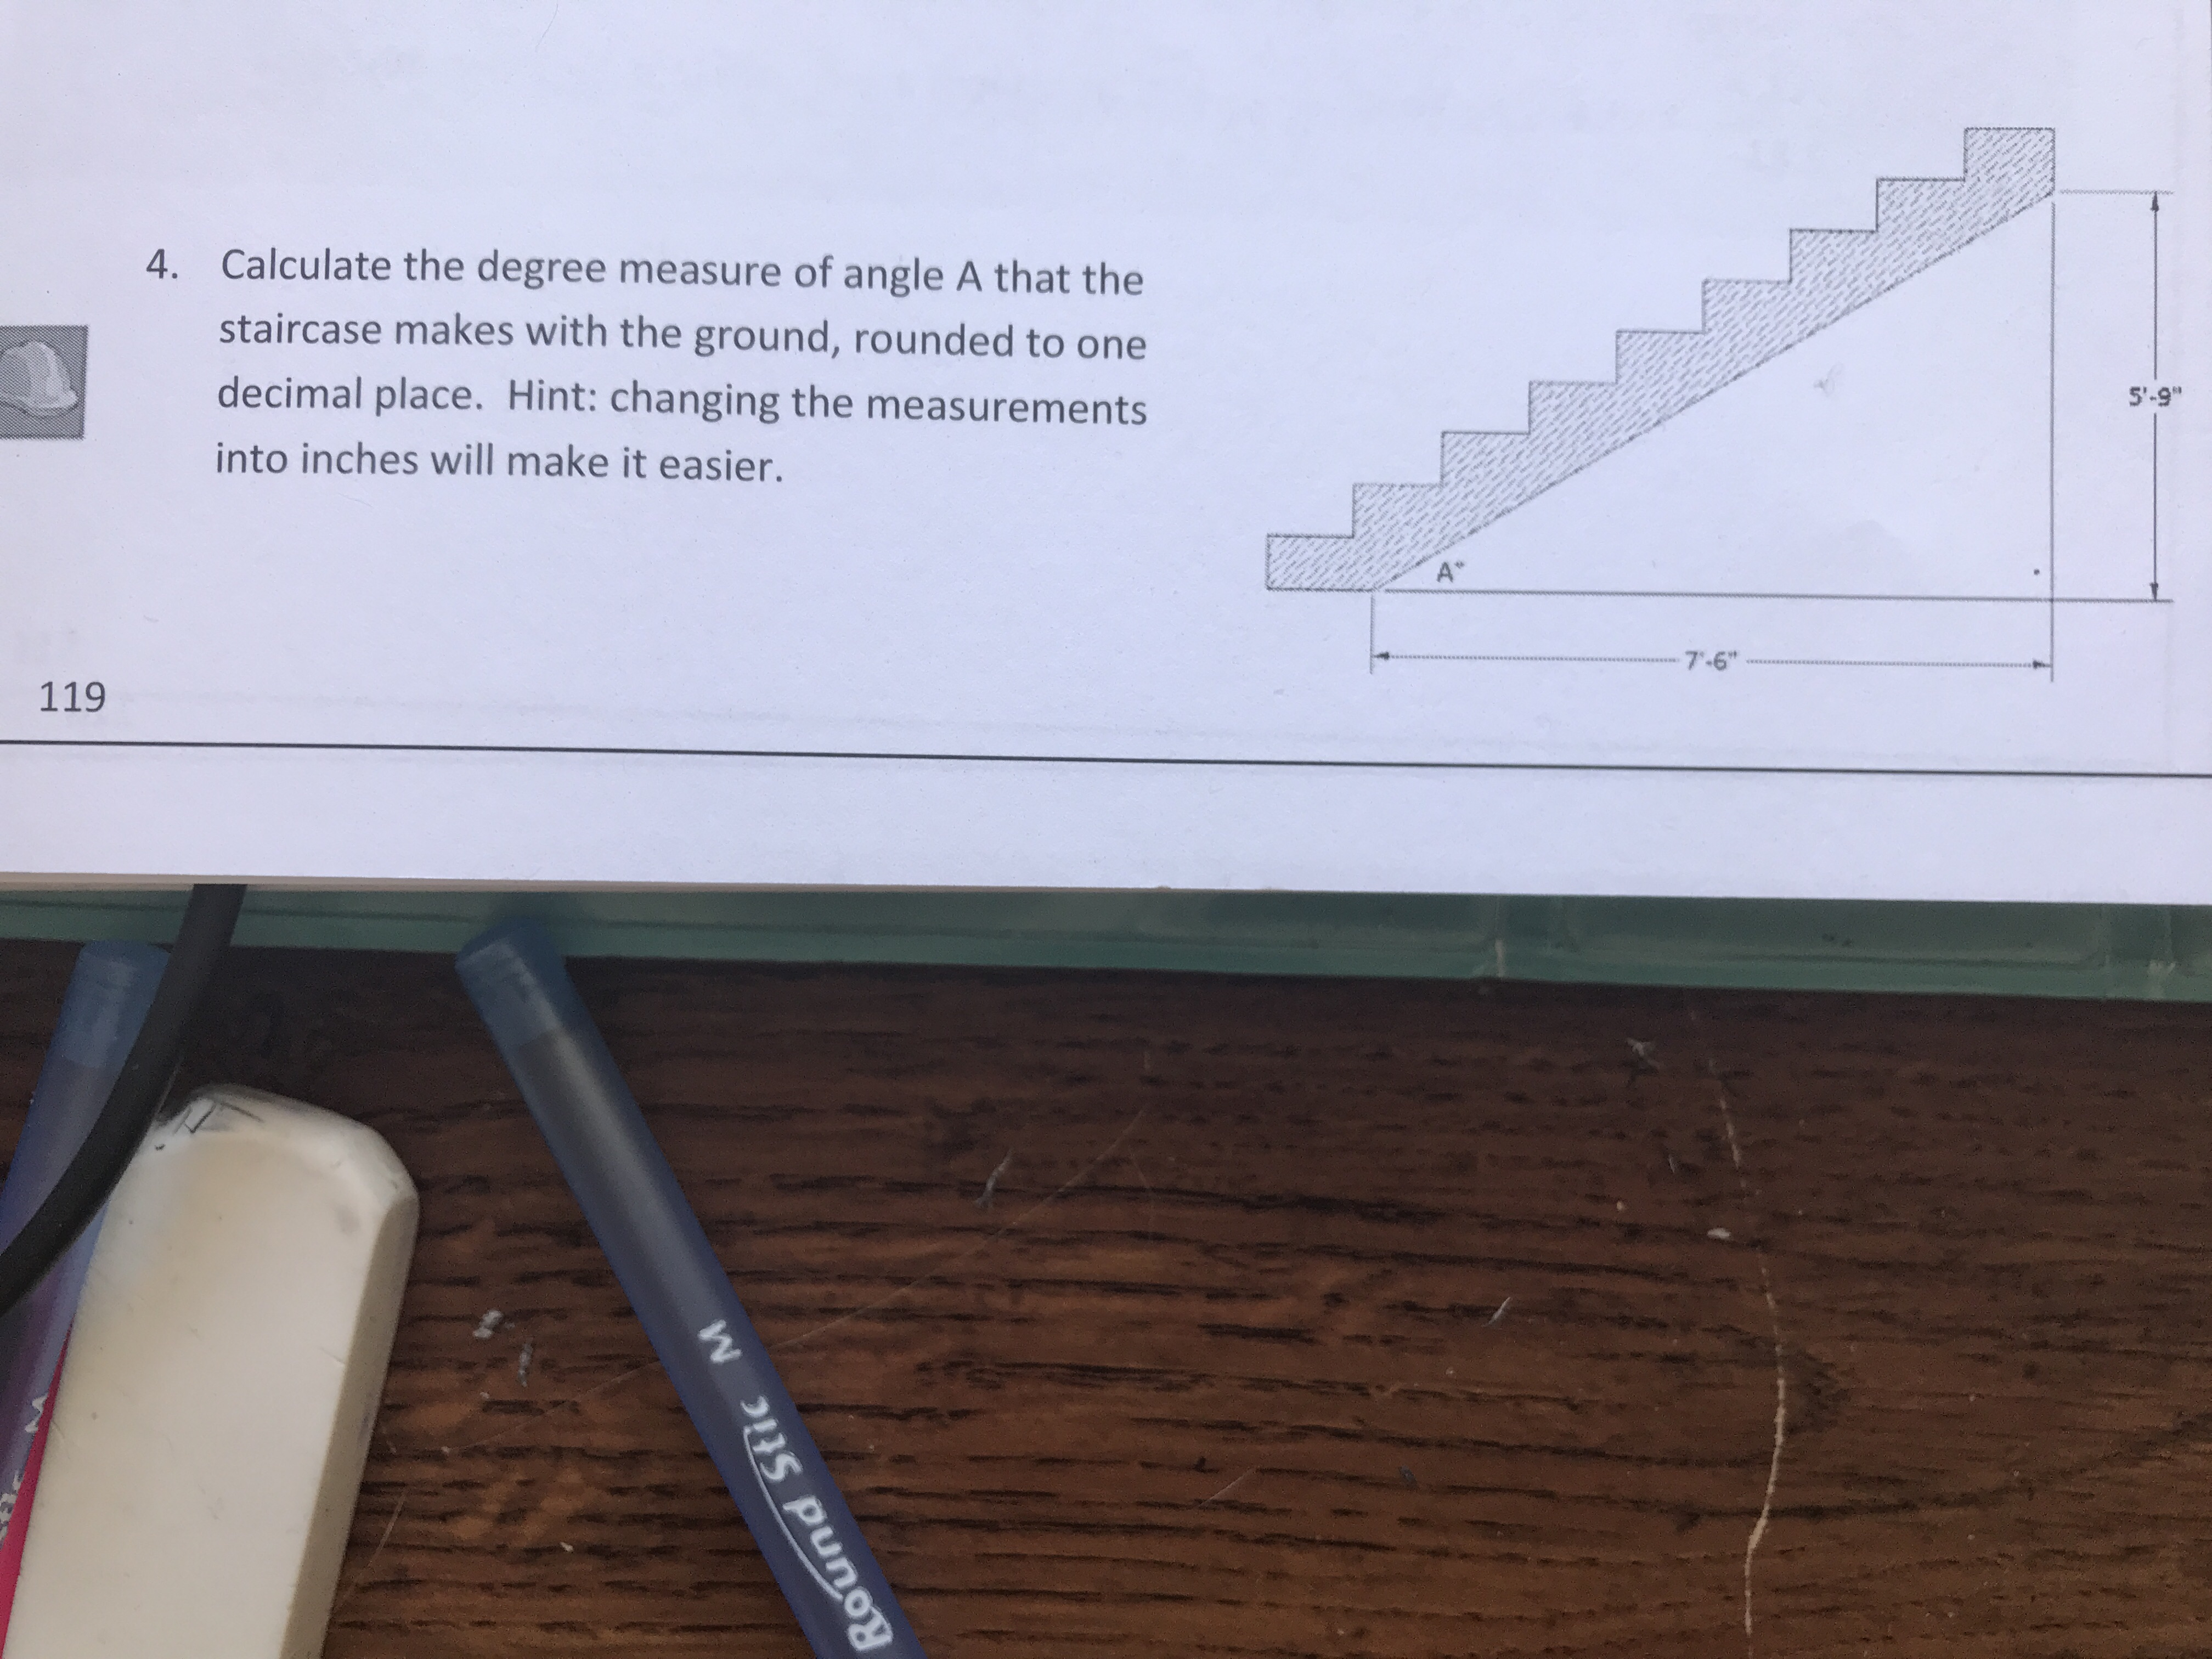 "Calculate the degree measure of angle A that the staircase makes with the ground, rounded to one decimal place. Hint: changing the measurements into inches will make it easier. 4. 5'-9"" 7'-6"" 119"